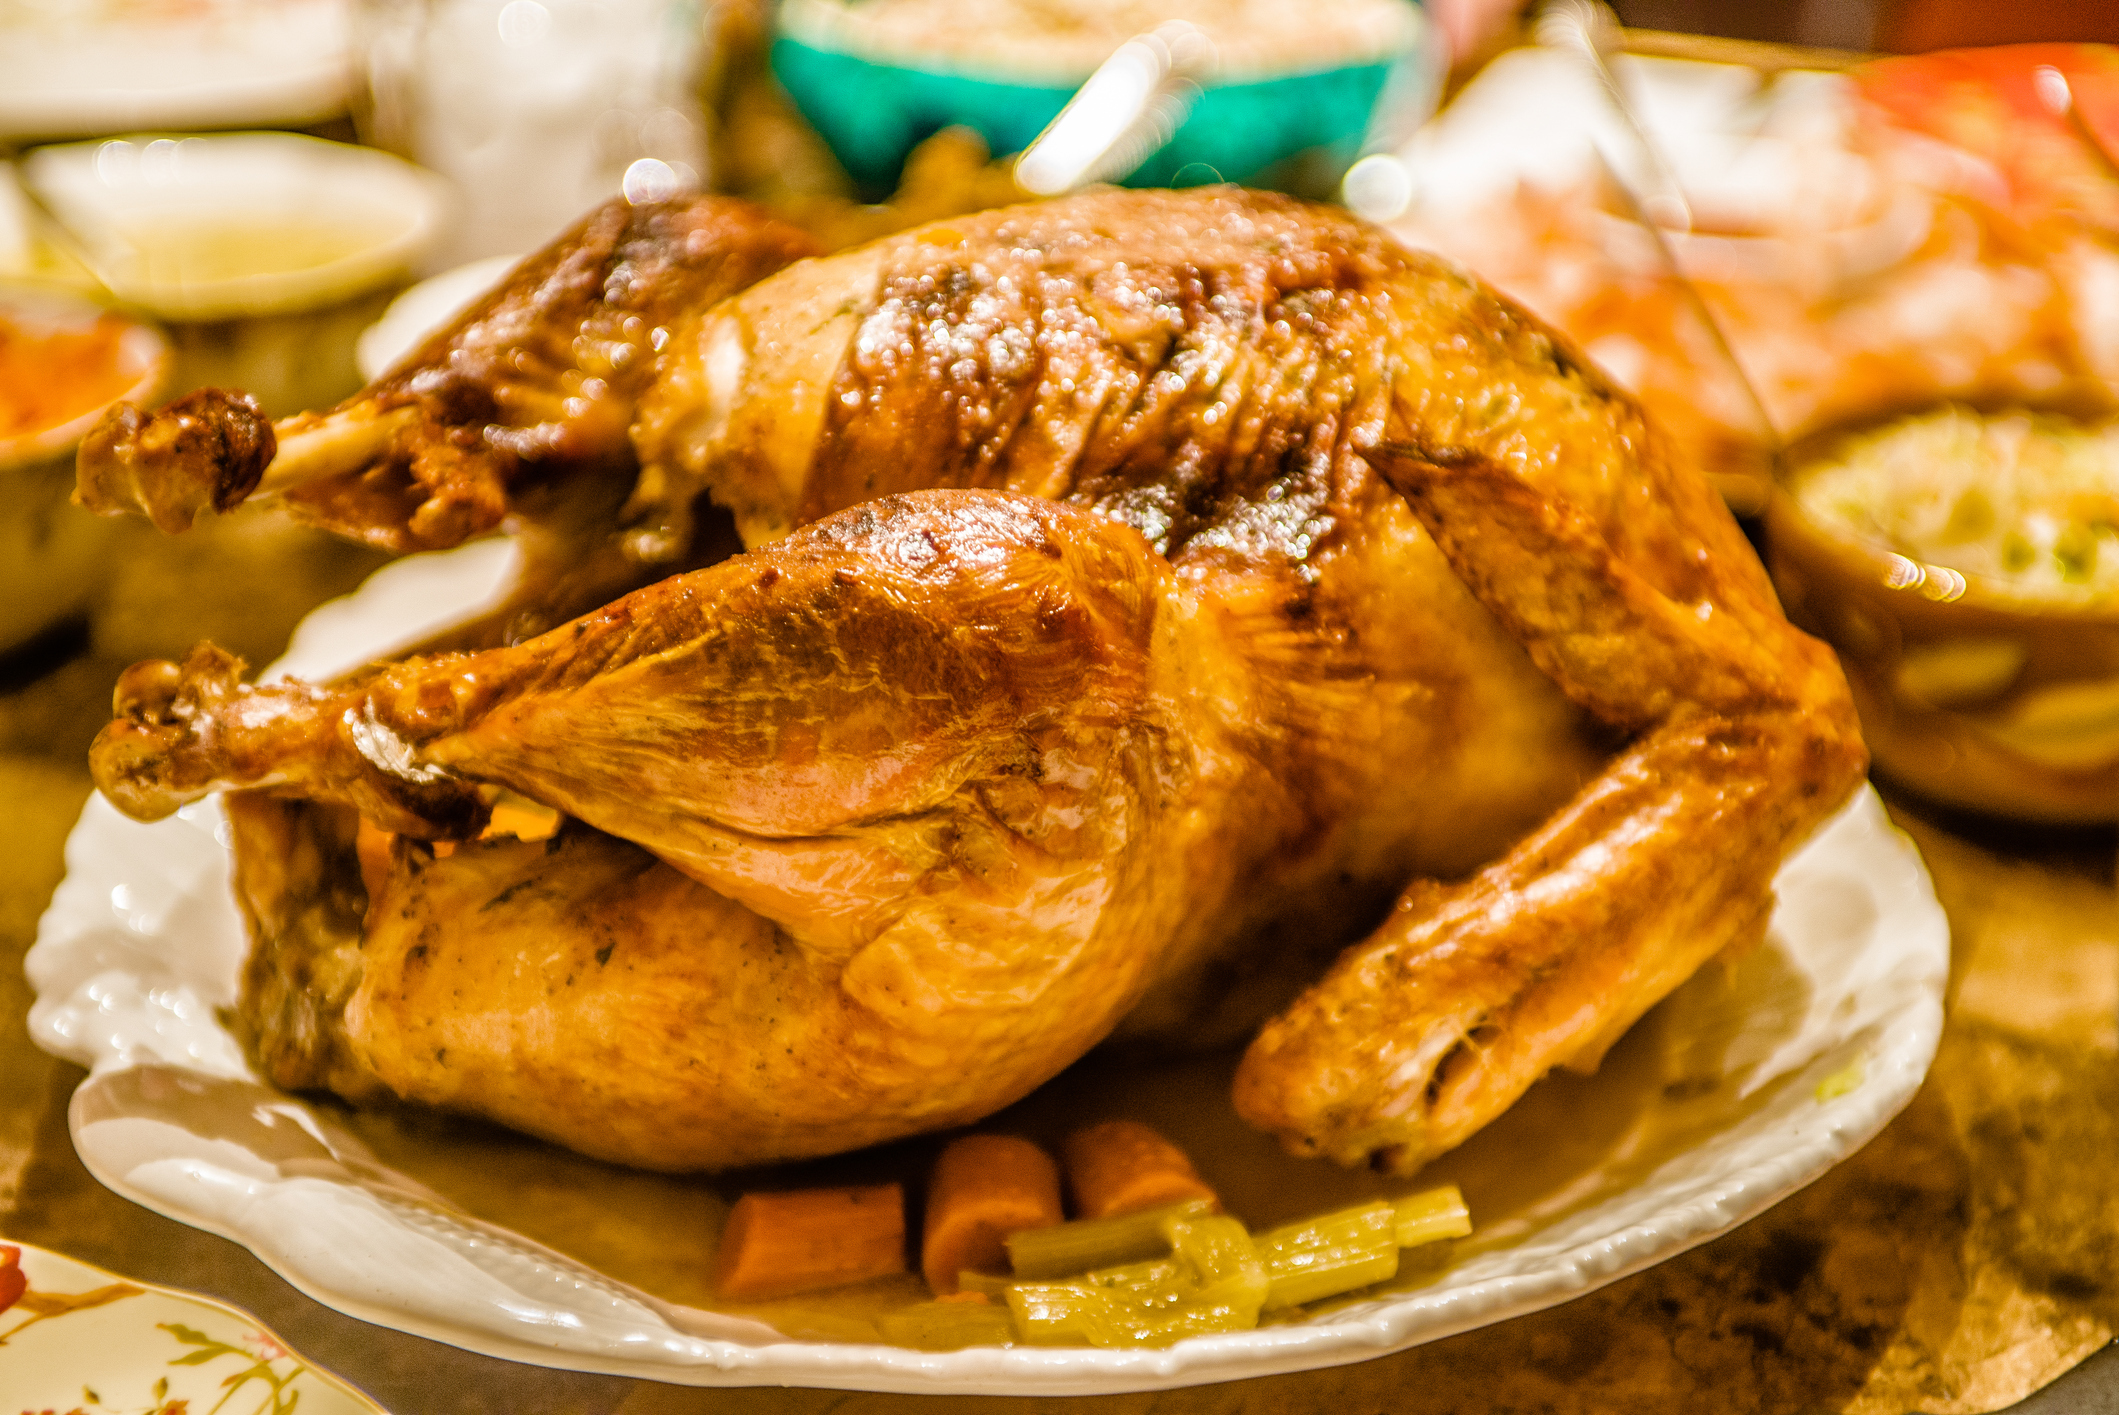 Tips for the ultimate Christmas lunch from celebrity butcher Vince Garreffa